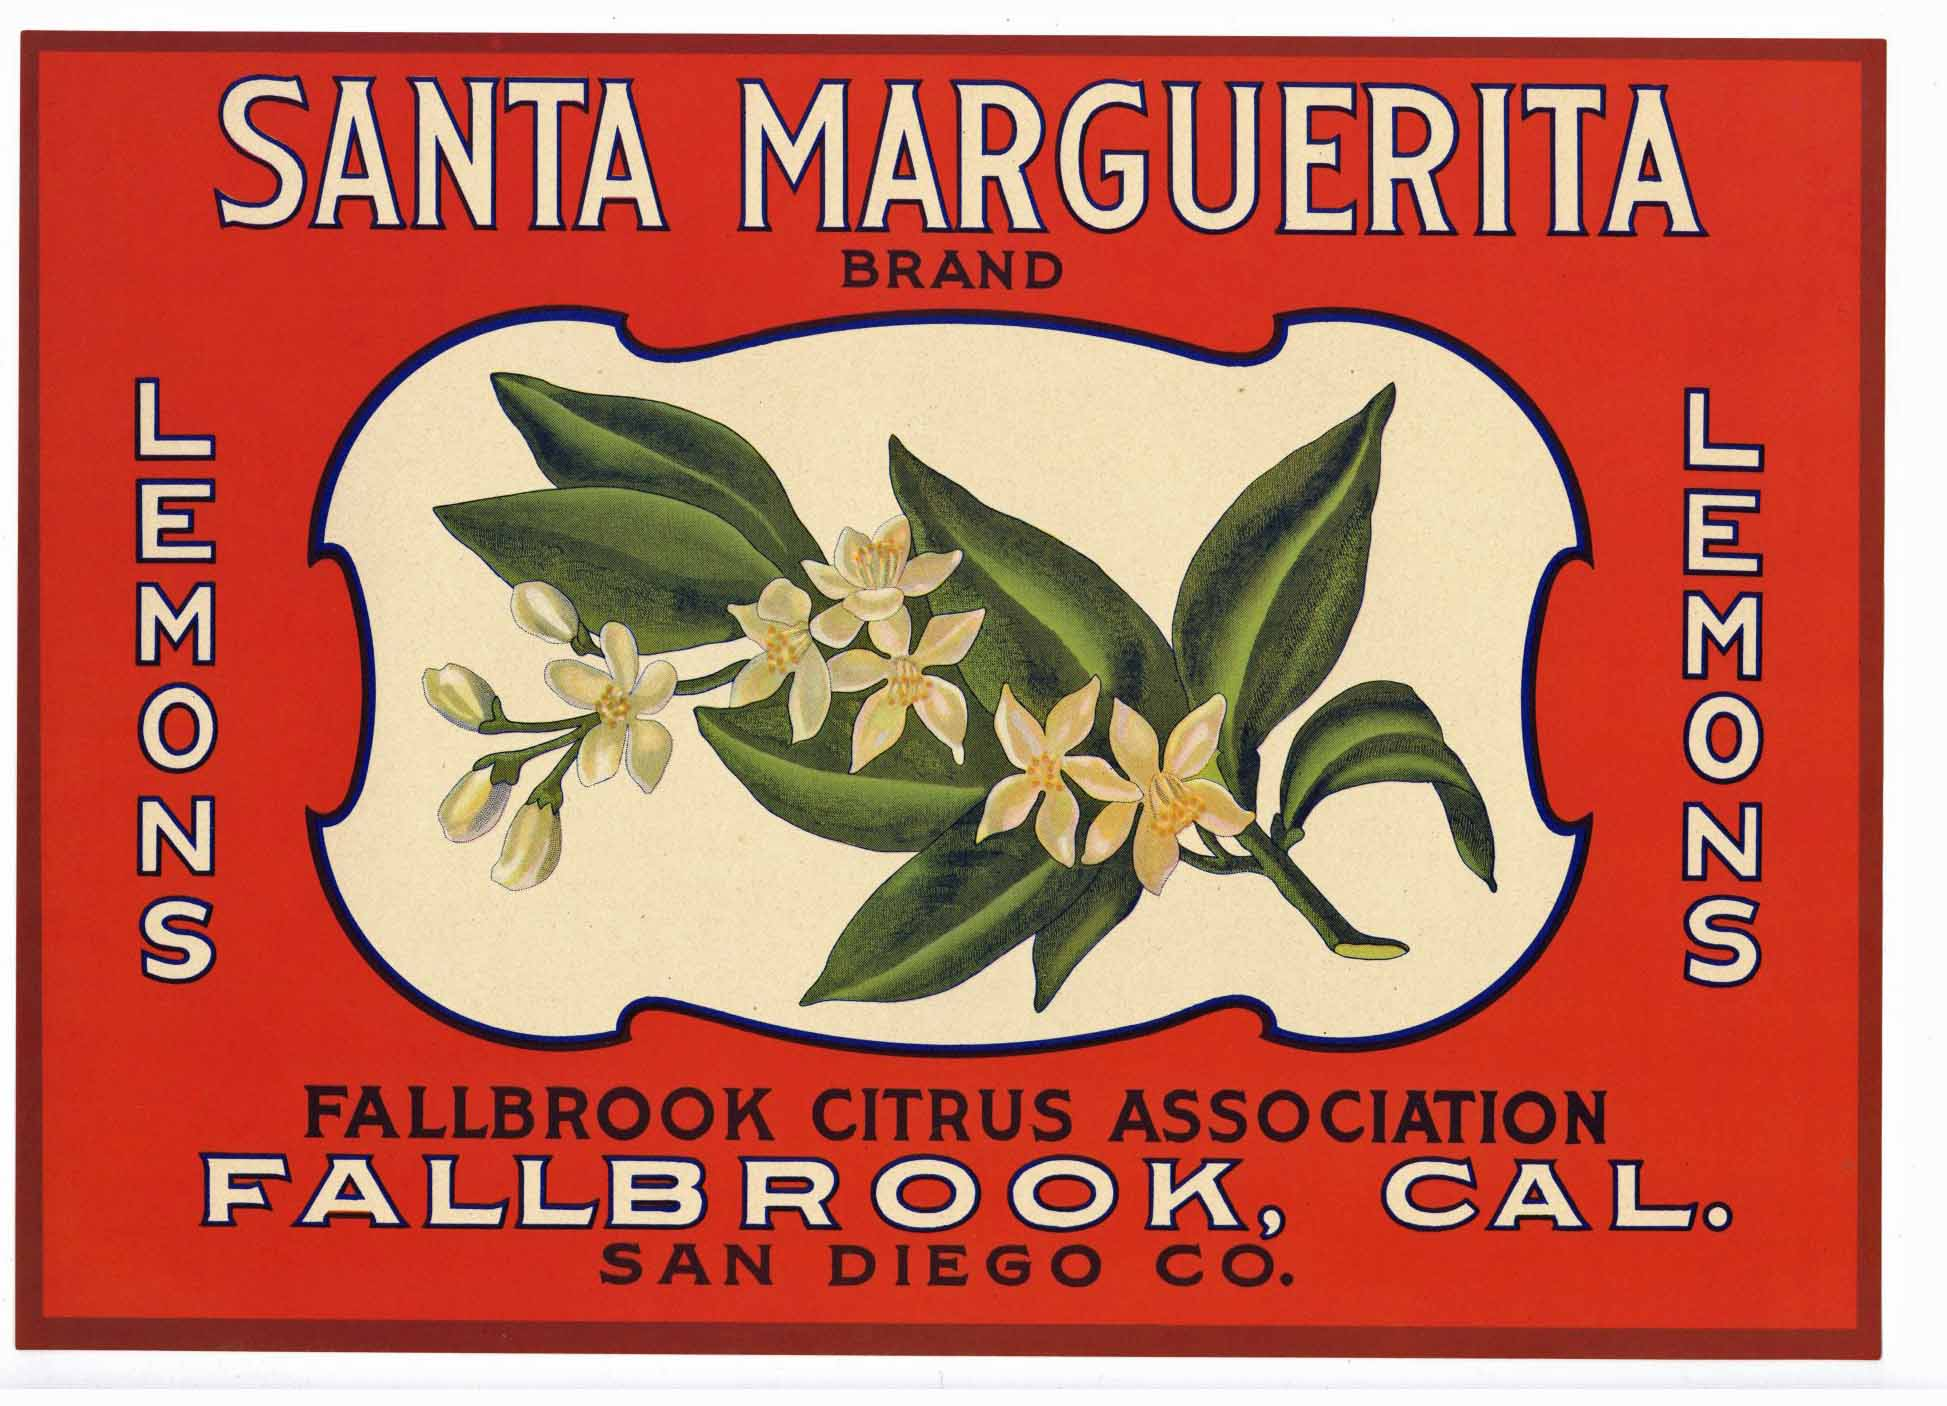 Santa Marguerita Brand Vintage Fallbrook Lemon Crate Label